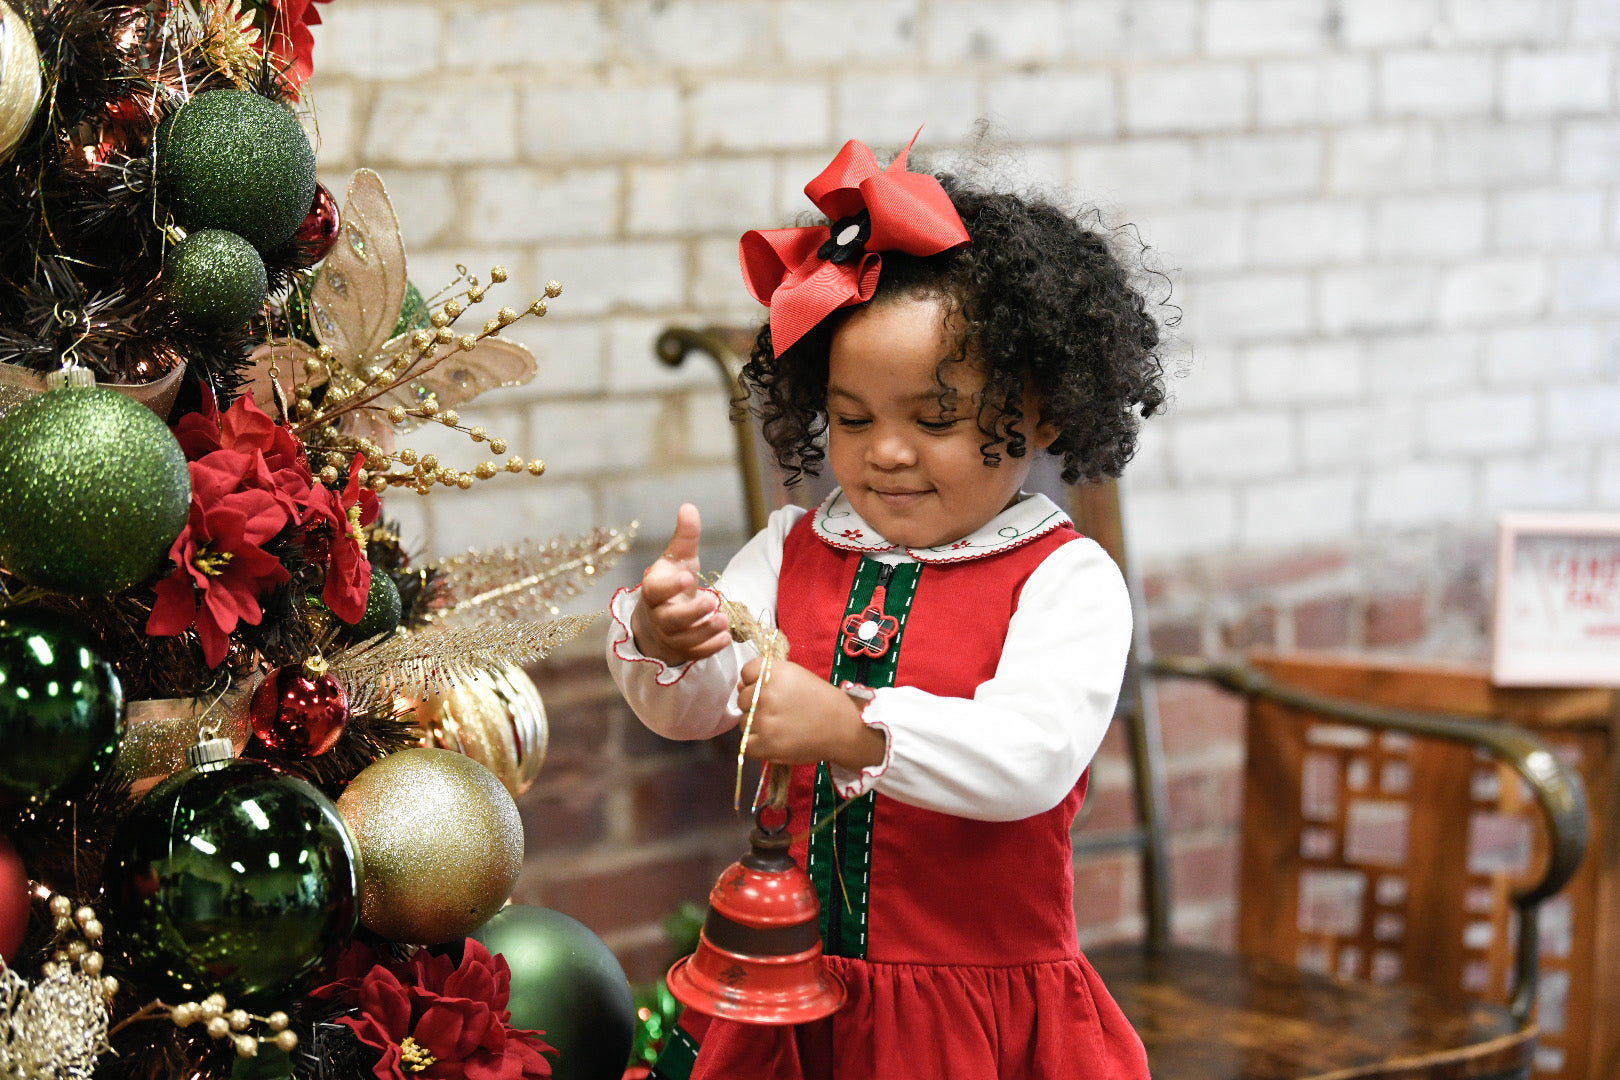 young girl decorating a tree in a holiday dress with matching hair bow